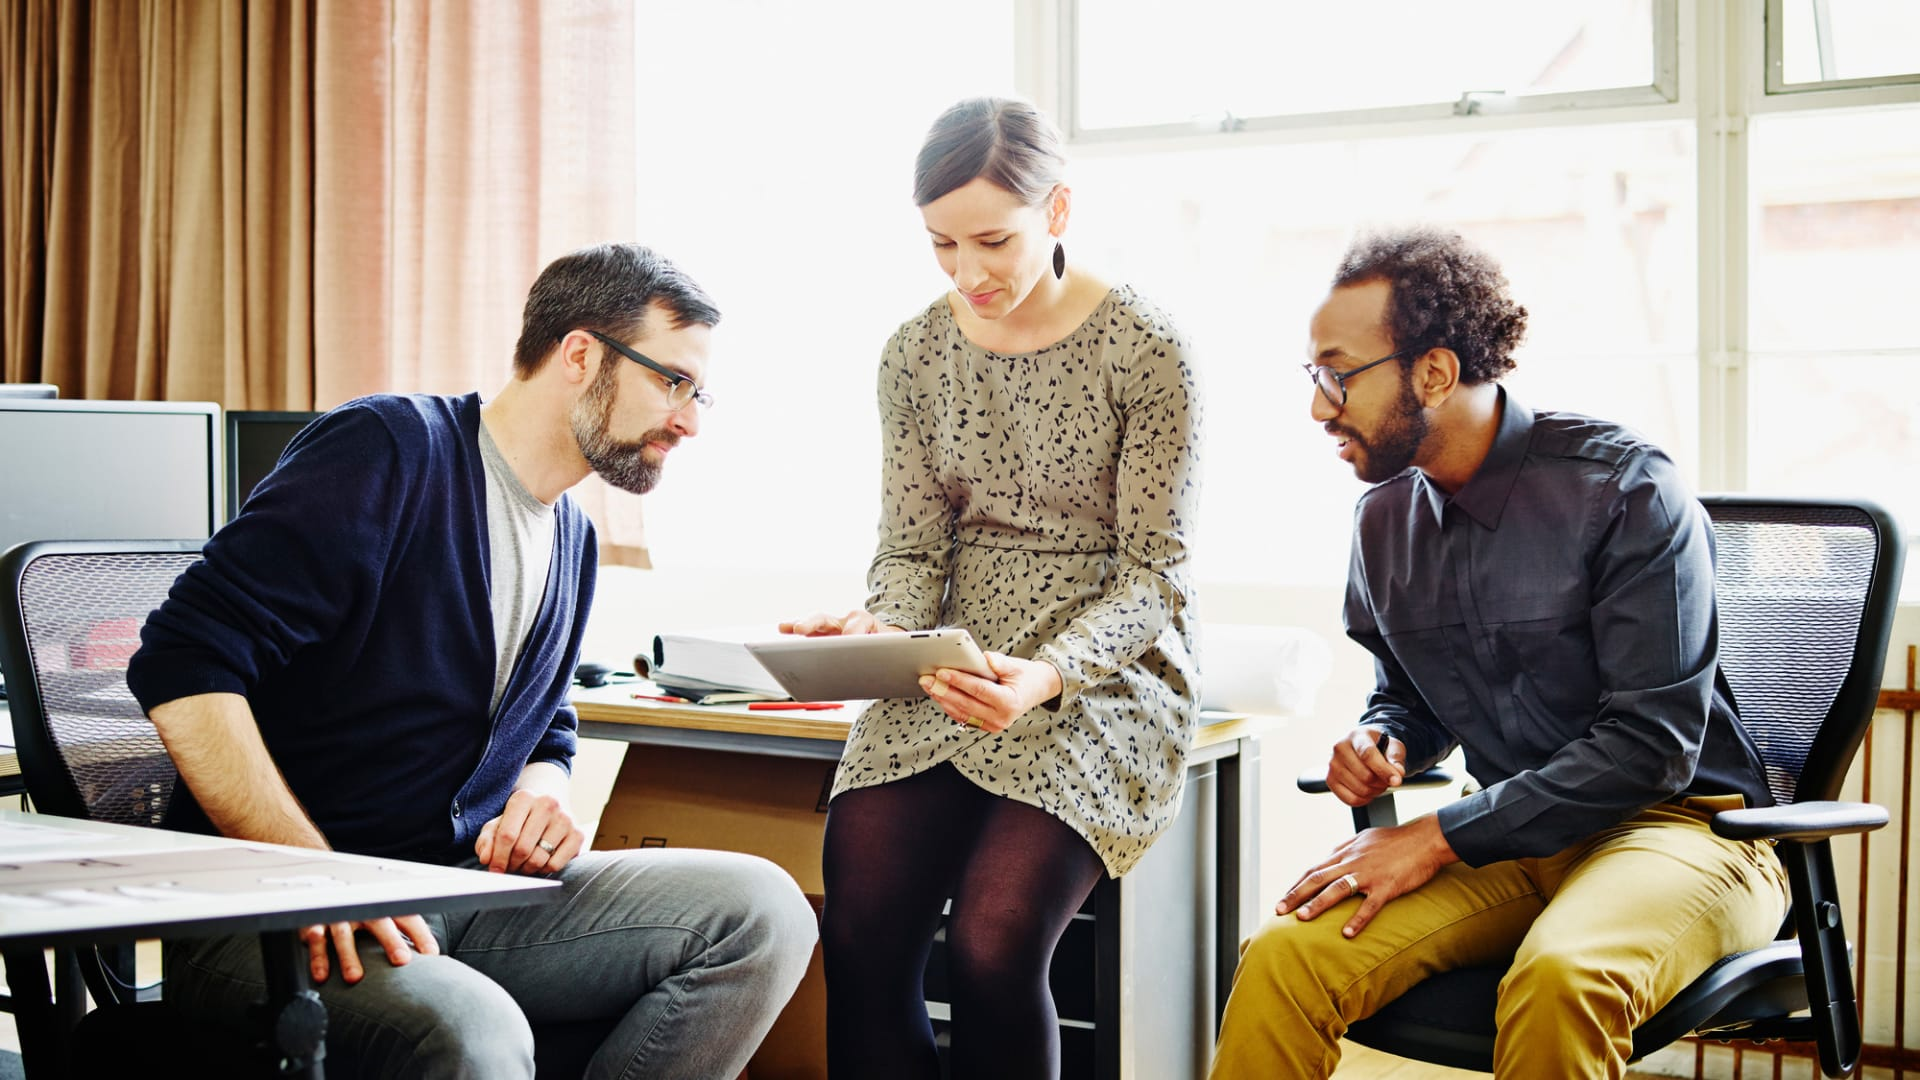 The 5 Essential Qualities Investors Look For in Startup Founders